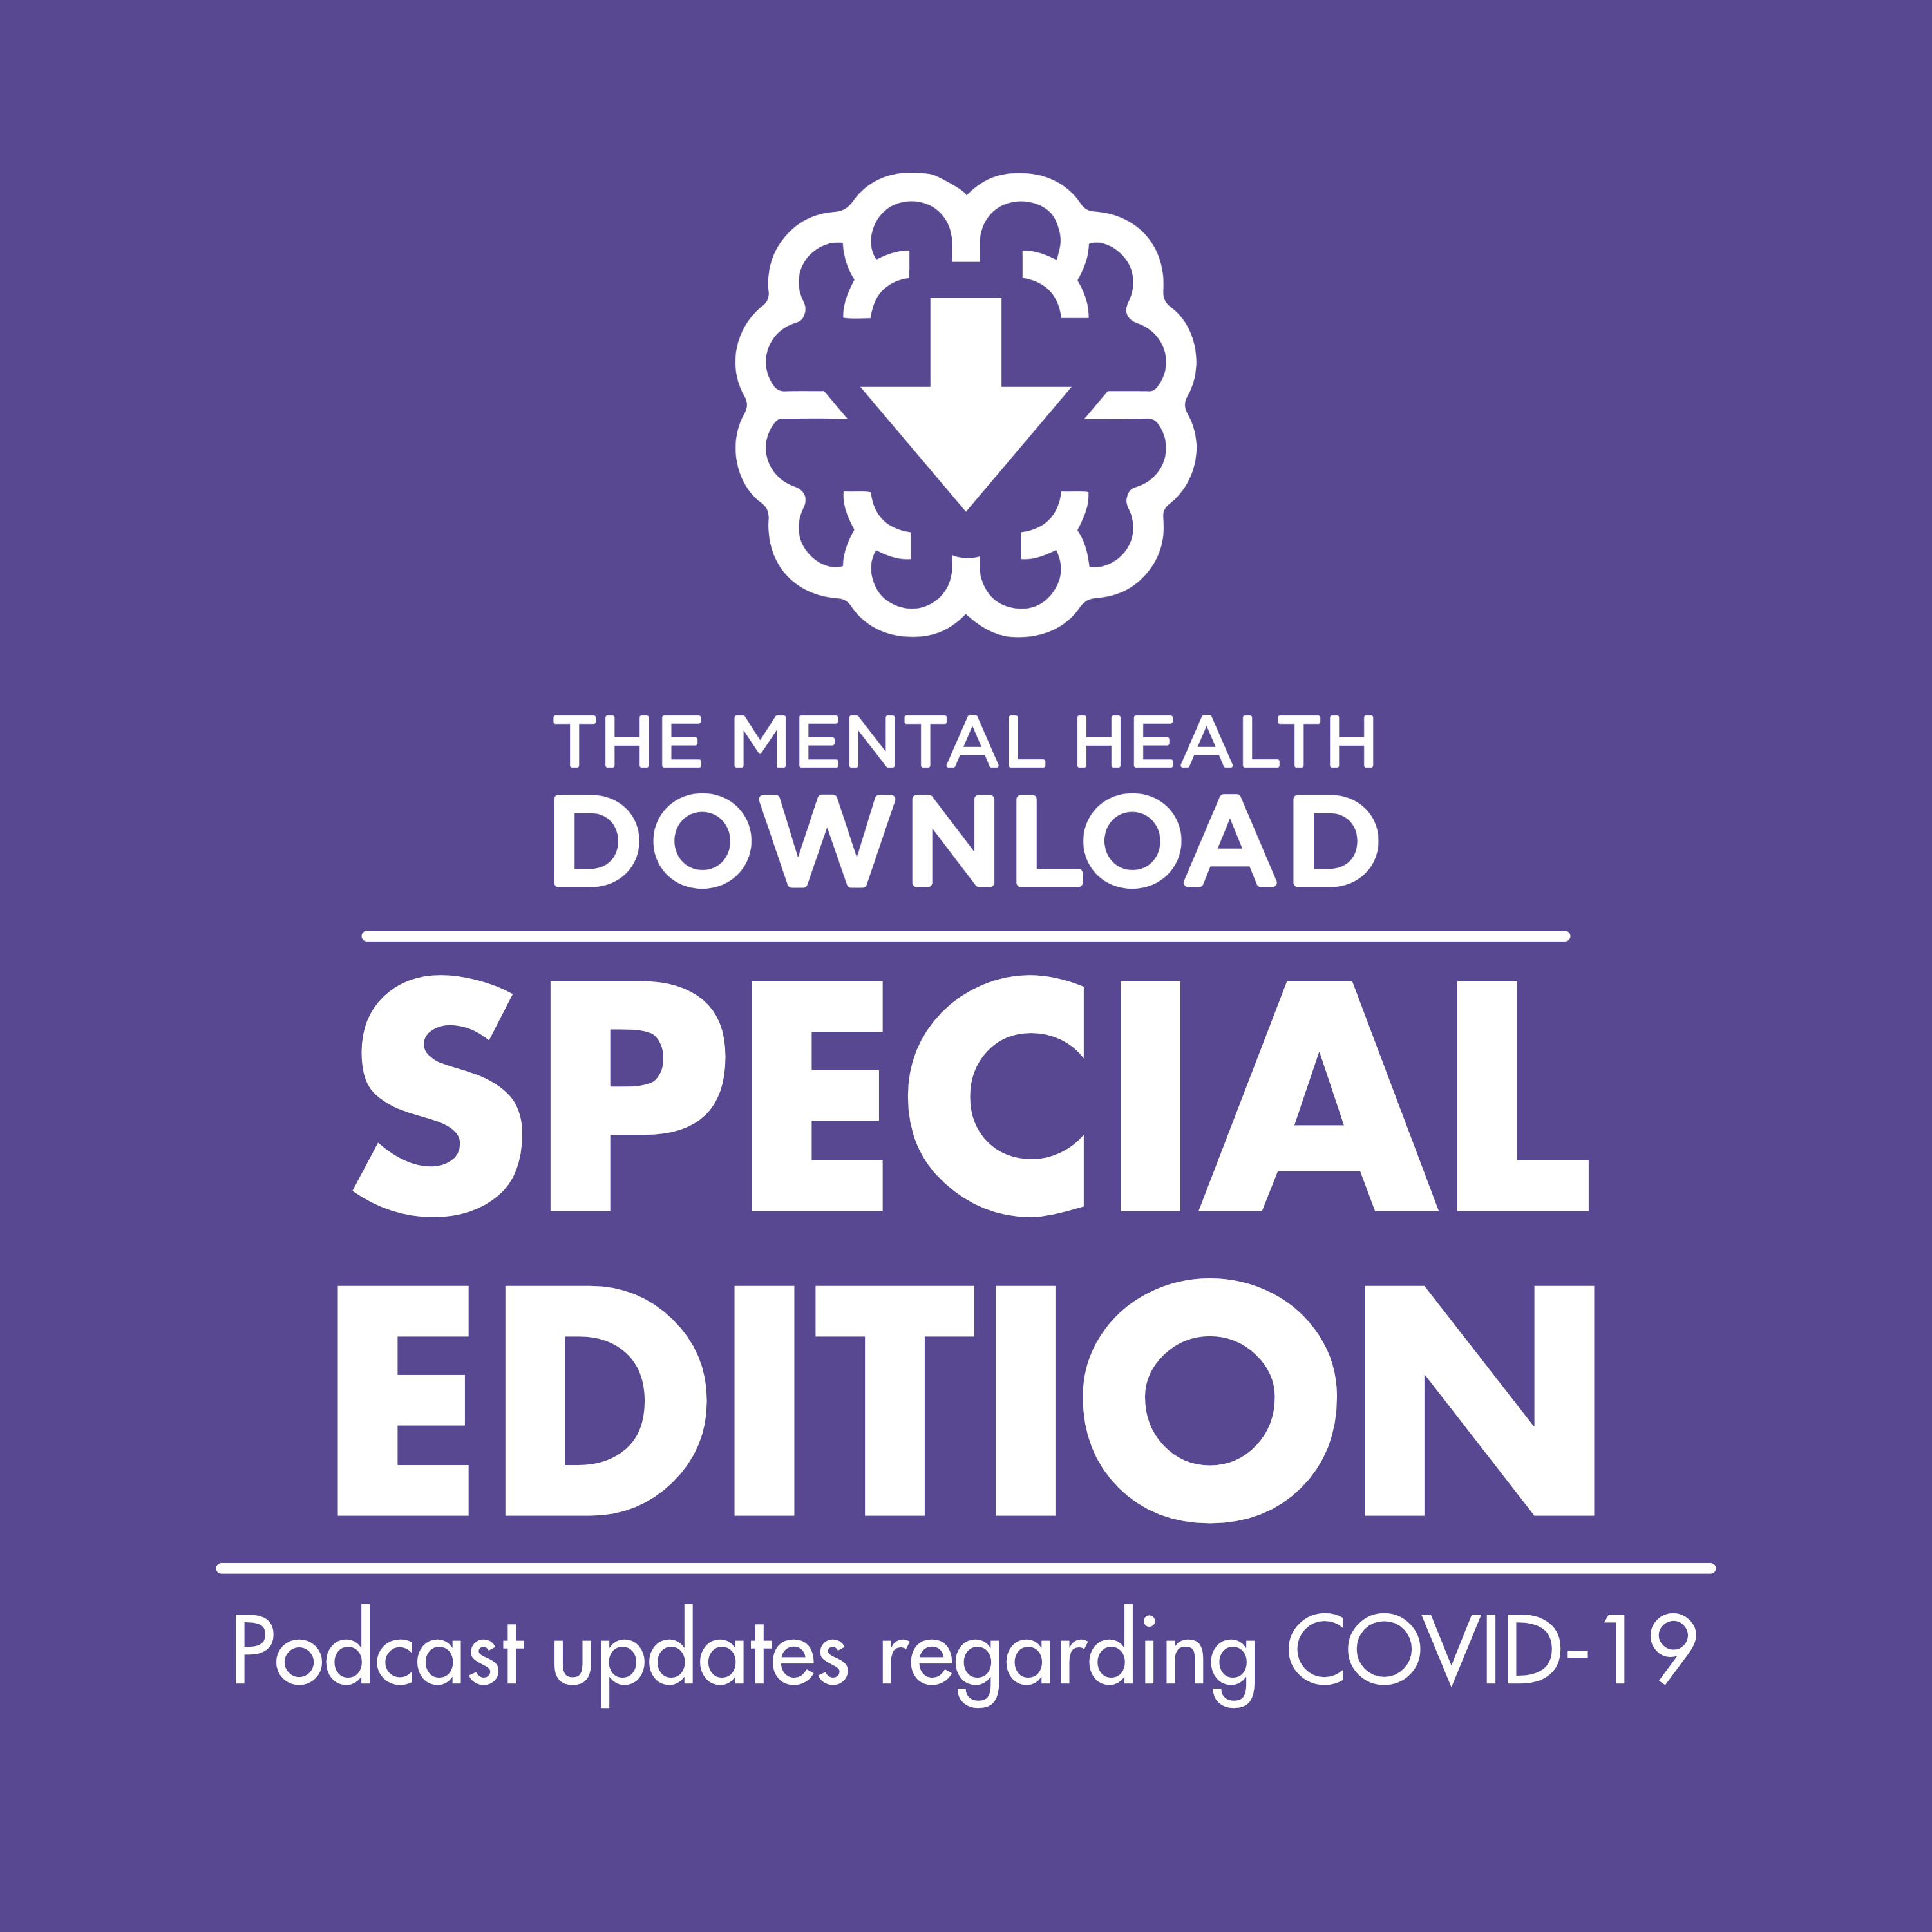 Mental Health Download: Exploring Mental Illness, Suicide, Homelessness and Incarceration - COVID-19 Series: College Senior Joins a Parent to Share Tips